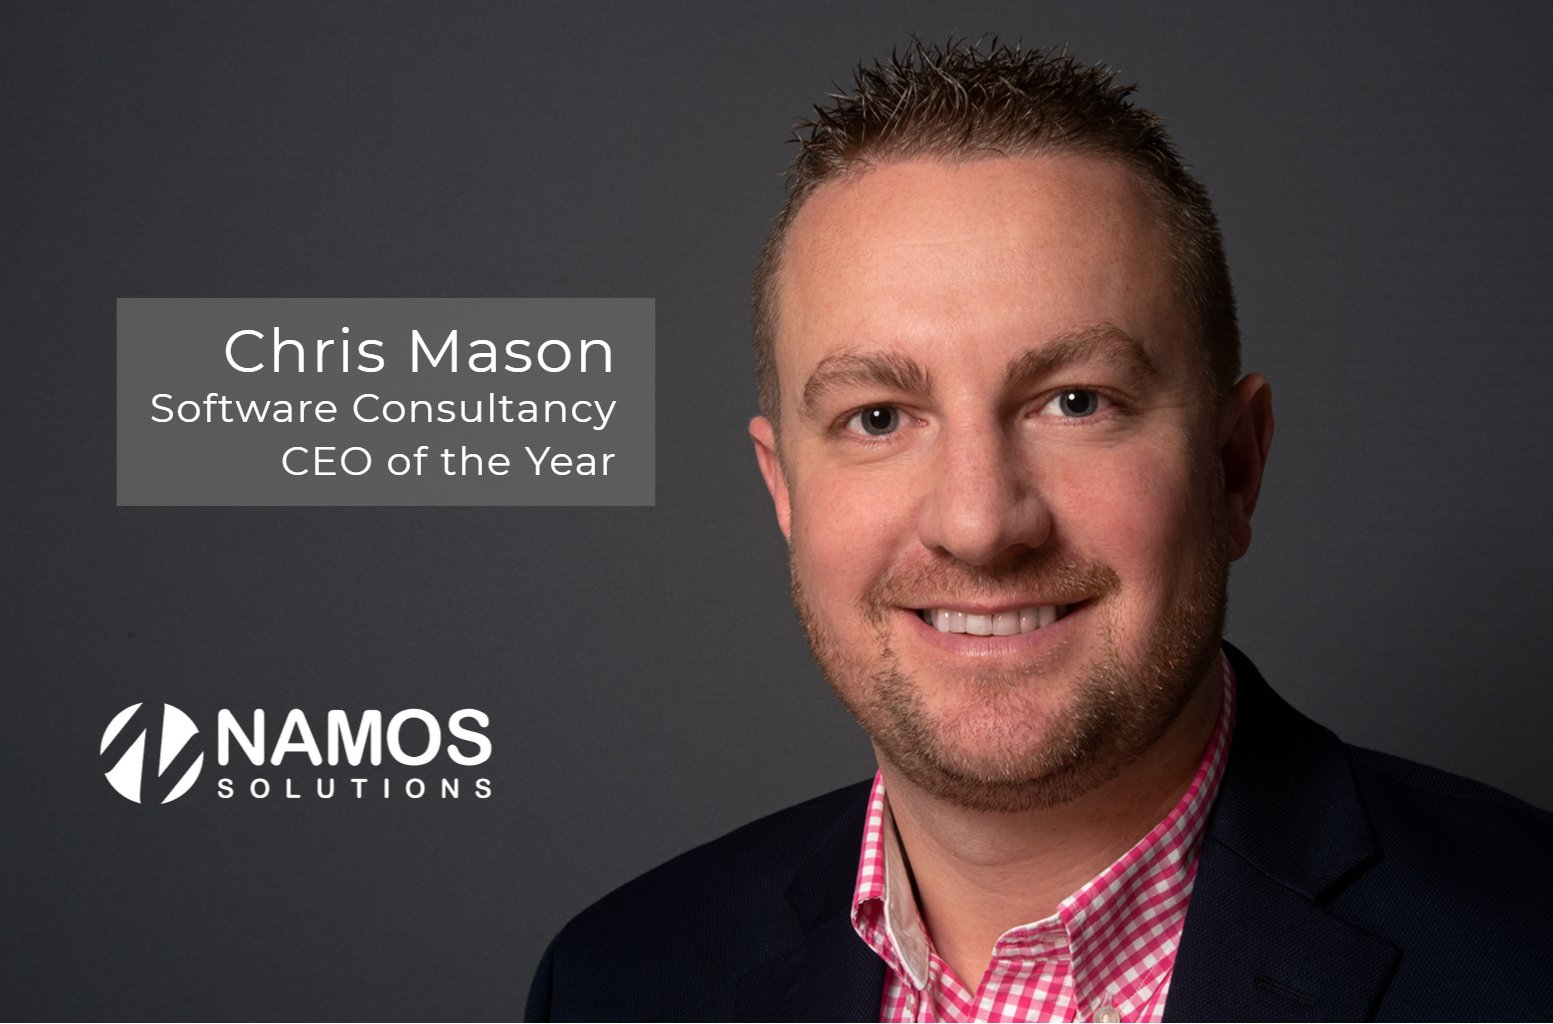 CEO Monthly Names Chris Mason, Software Consultancy CEO of the Year